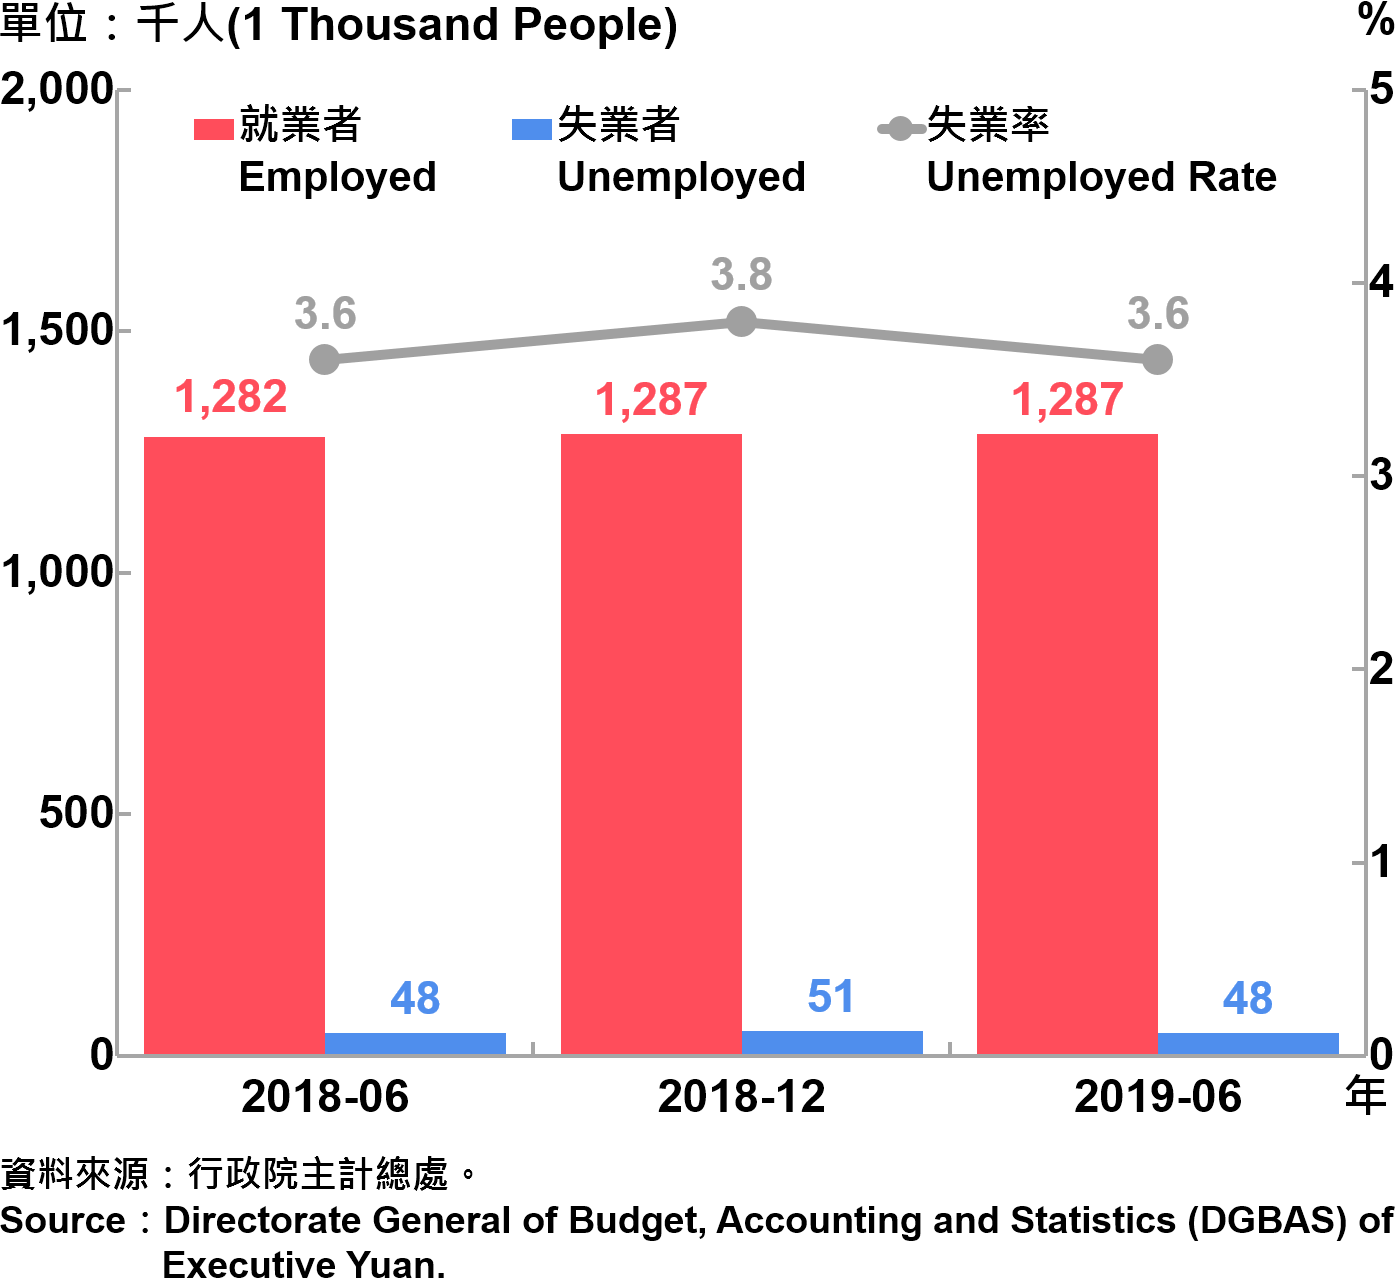 臺北市勞動力人數統計—2019Q2 Labor Force Statistics in Taipei City—2019Q2